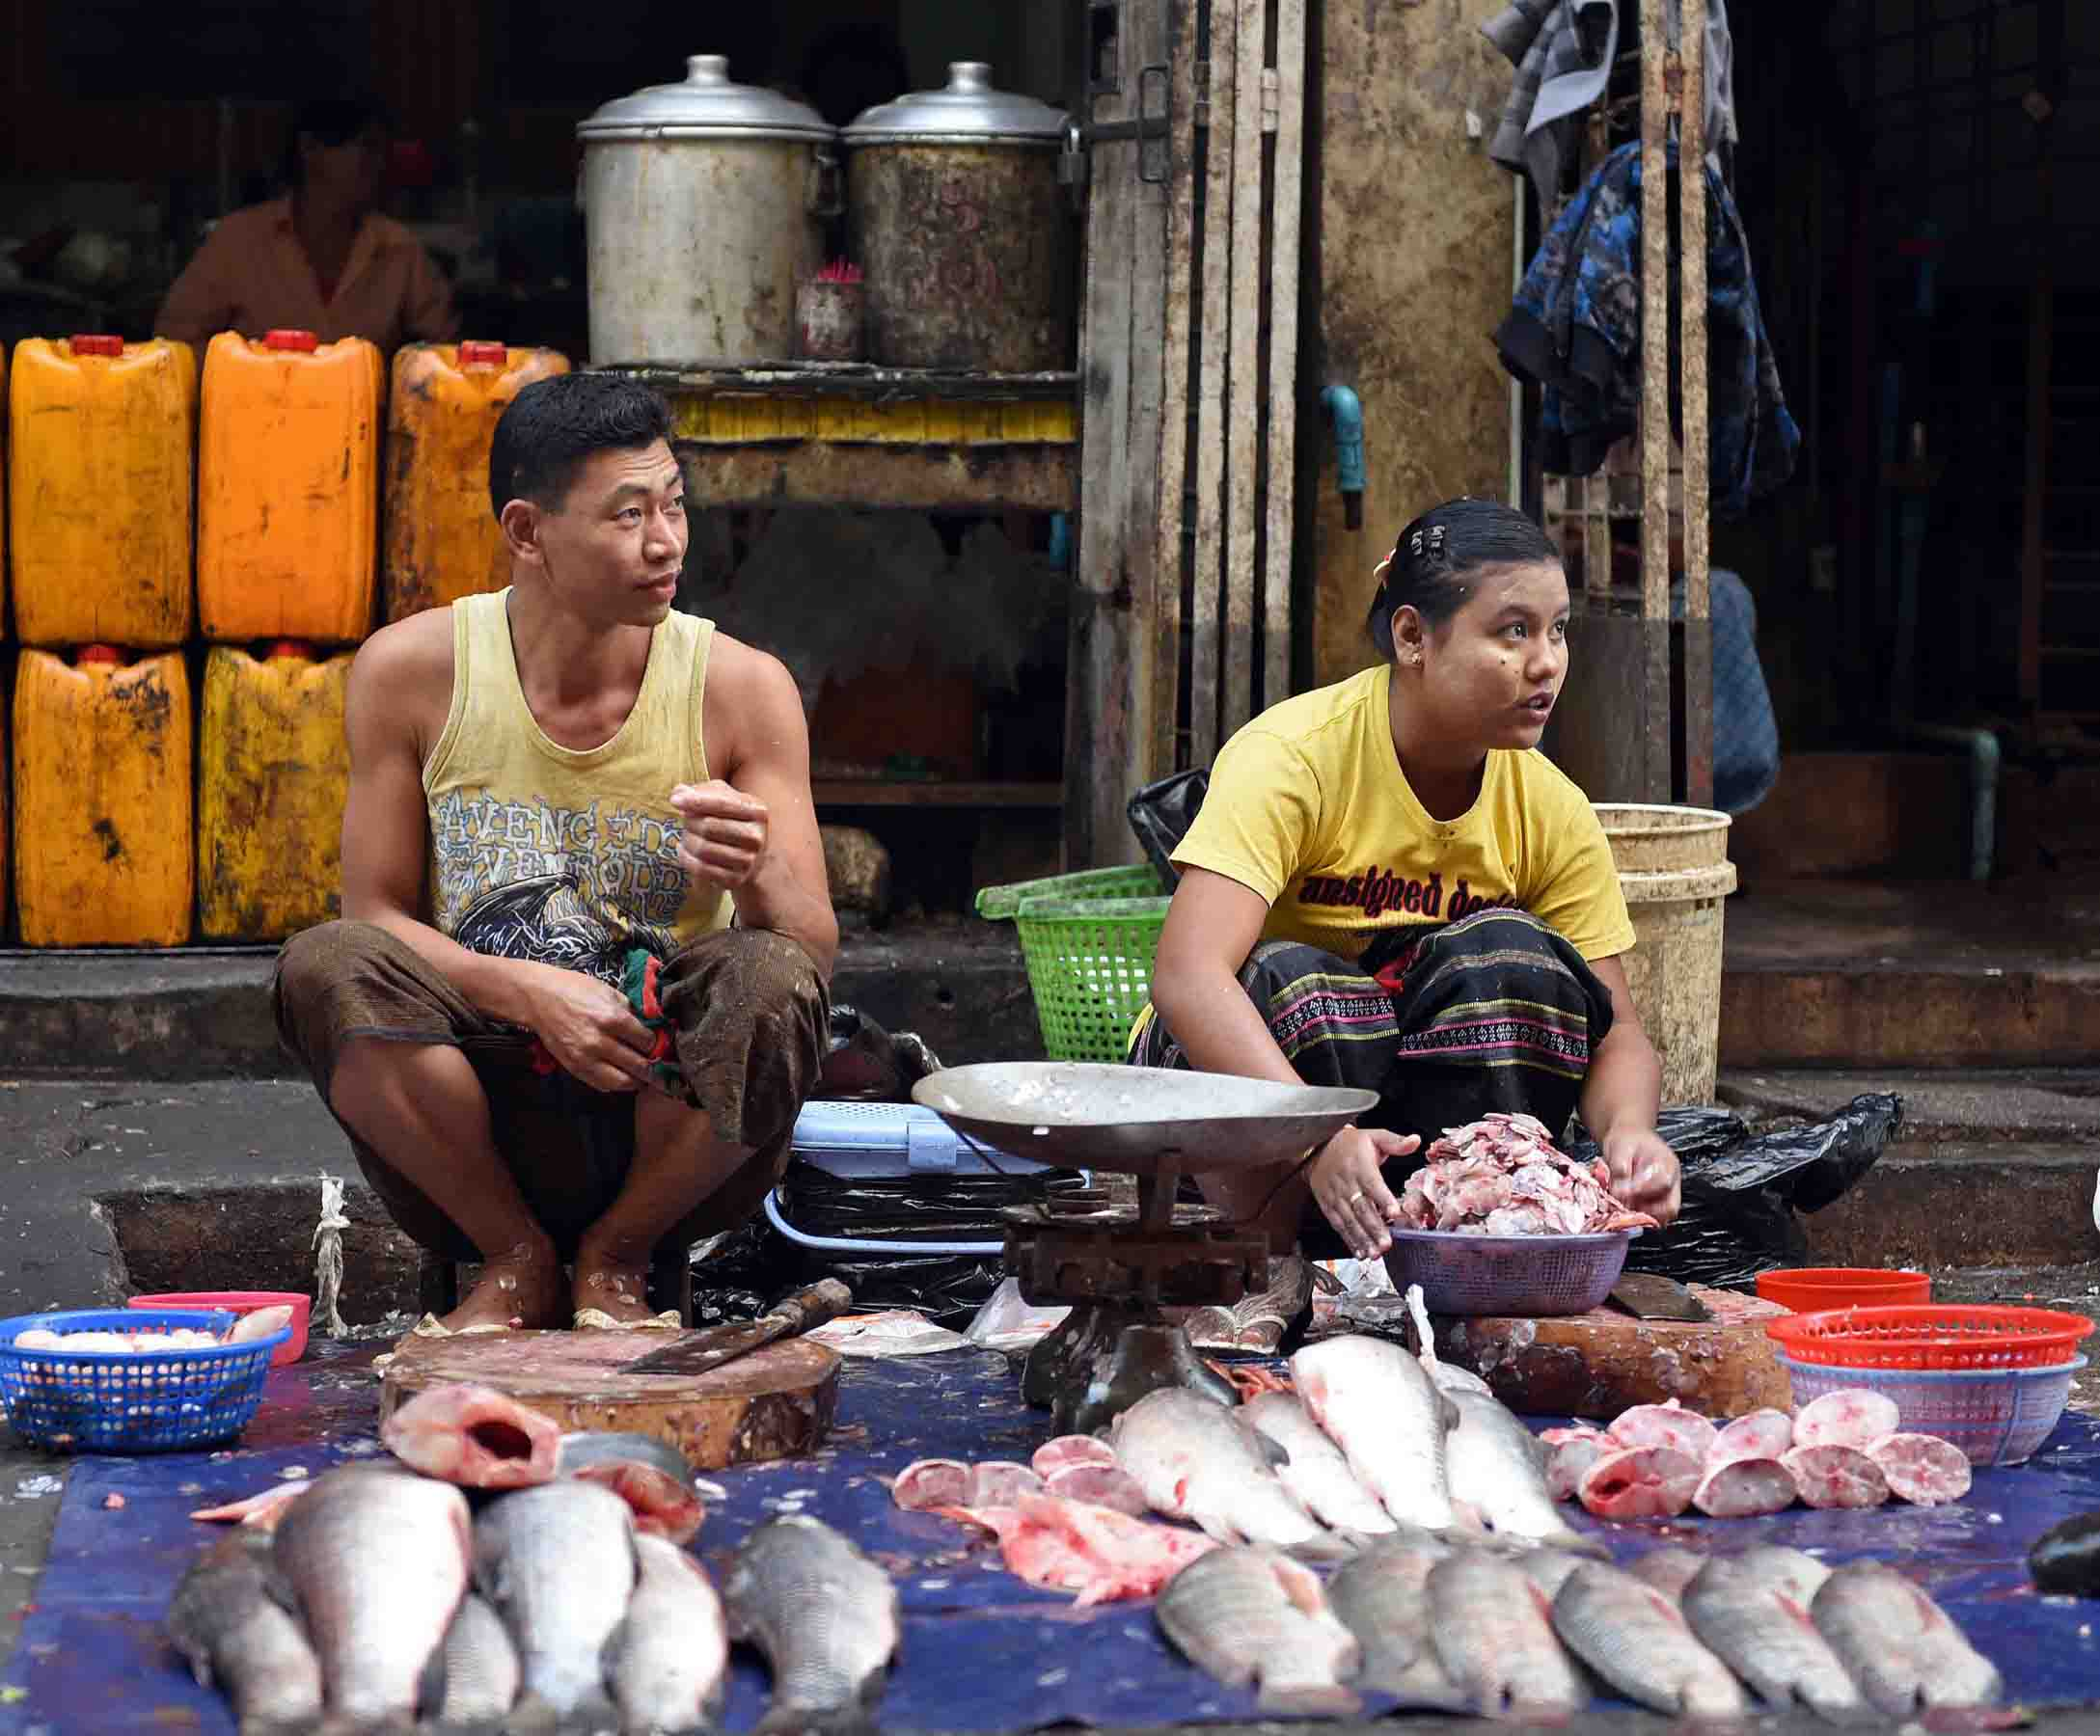 Two fish mongers selling fresh fish. (Photo: Naomi Hellmann)